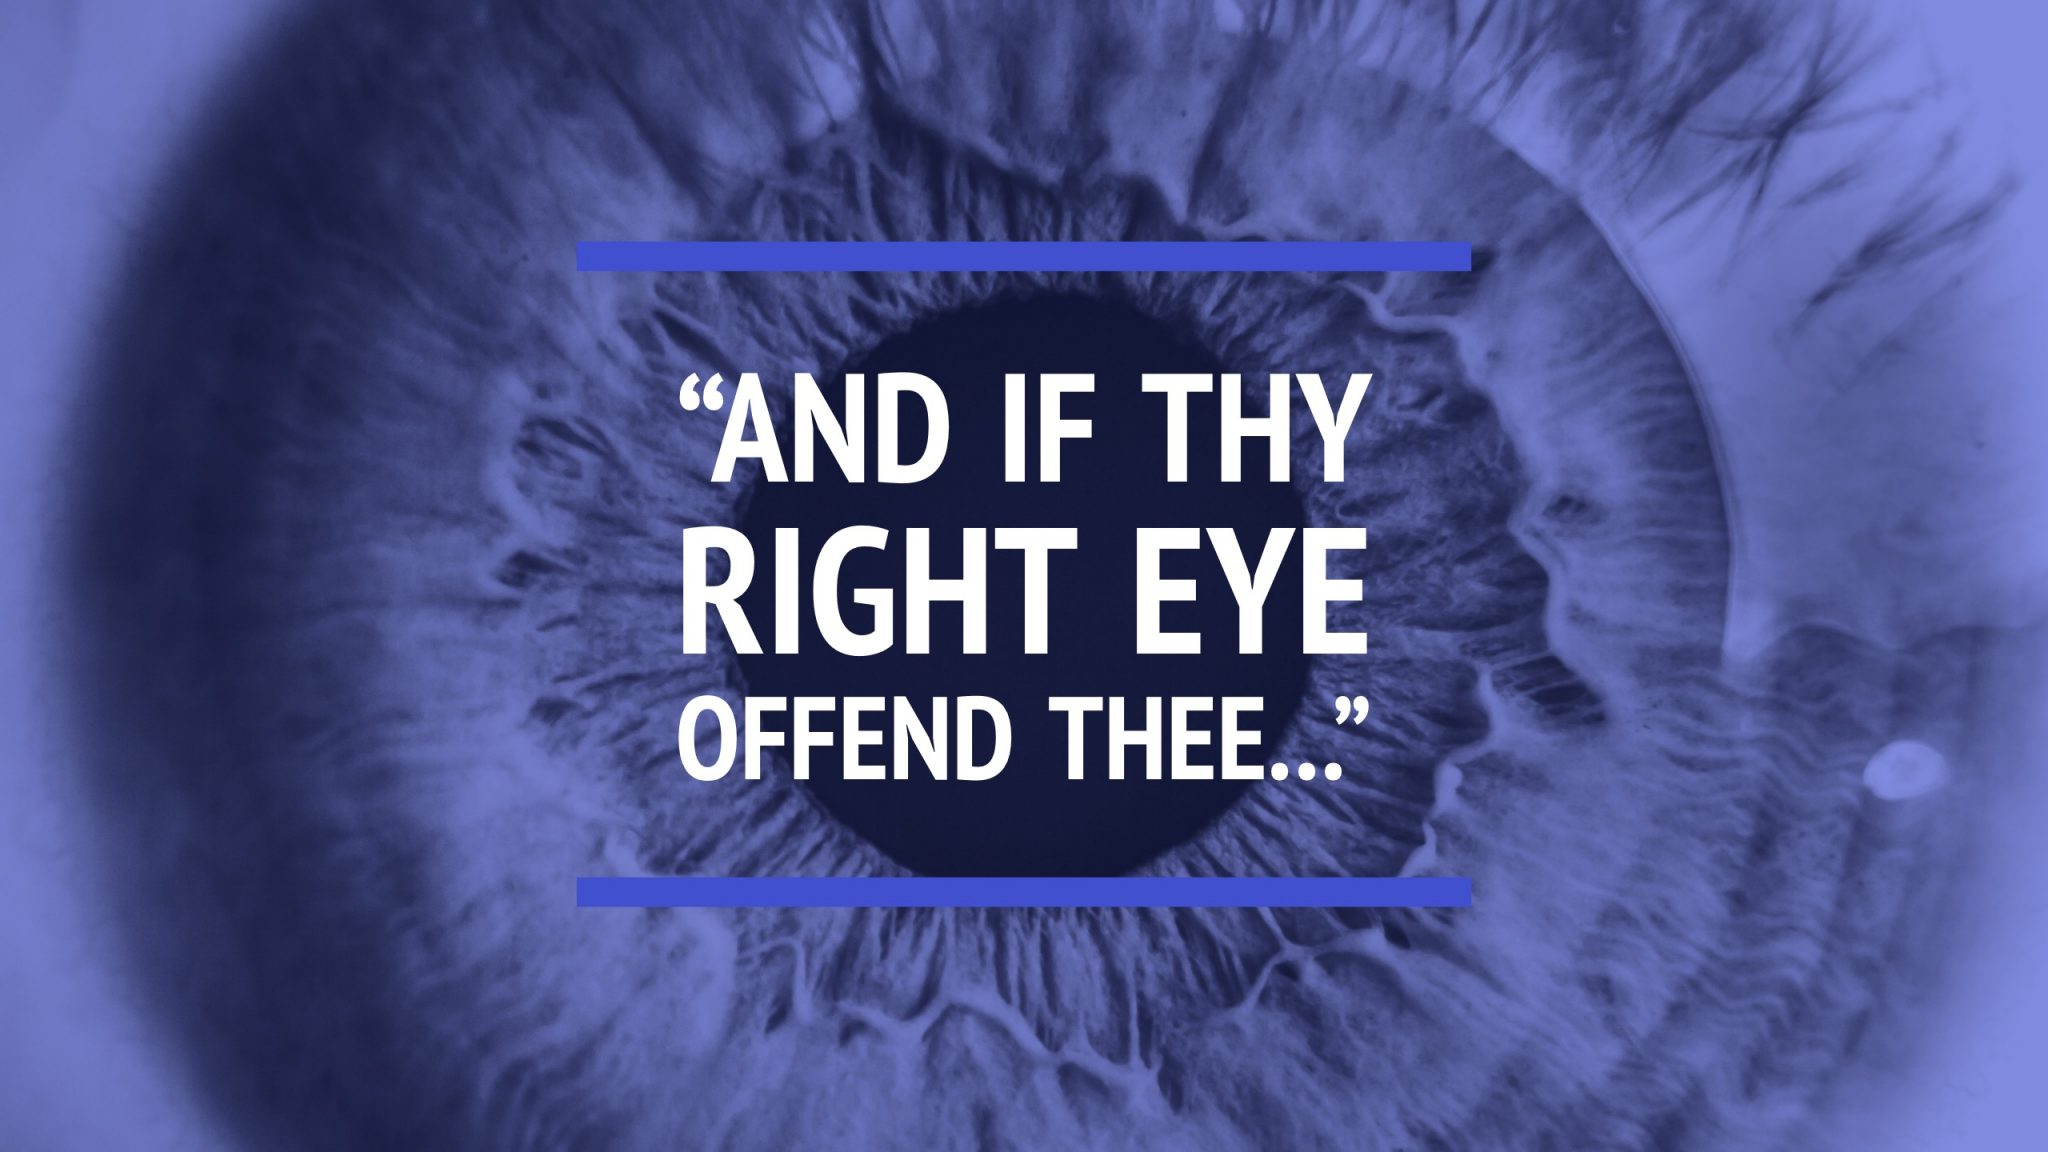 And if thy right eye offend thee